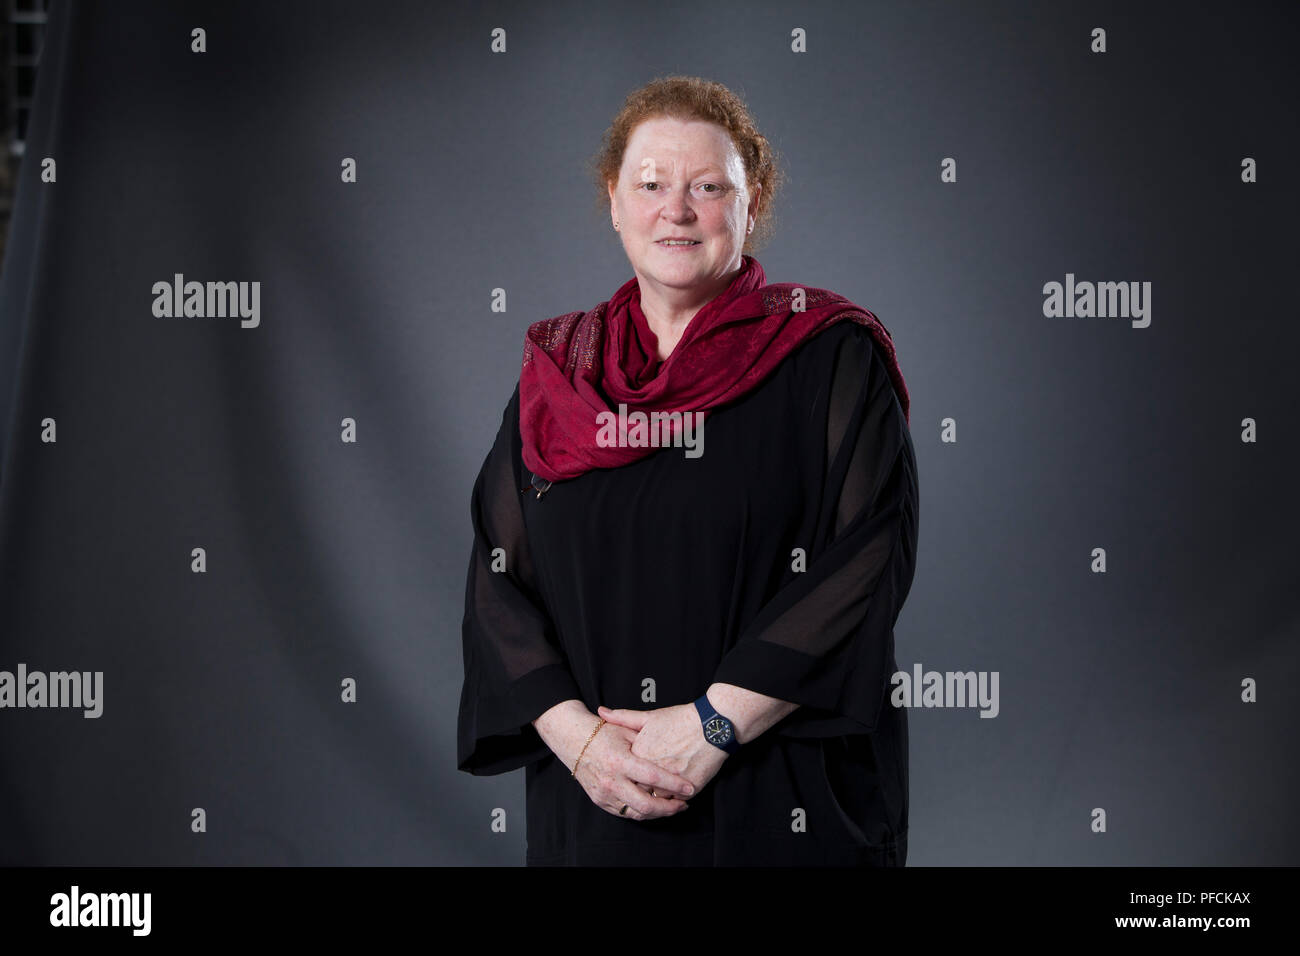 Edinburgh, UK. 21st August, 2018. Dame Susan Margaret Black DBE FRSE FRCP is a Scottish forensic anthropologist, anatomist and academic. She is Professor of Anatomy and Forensic Anthropology at the University of Dundee. Pictured at the Edinburgh International Book Festival. Edinburgh, Scotland.  Picture by Gary Doak / Alamy Live News - Stock Image